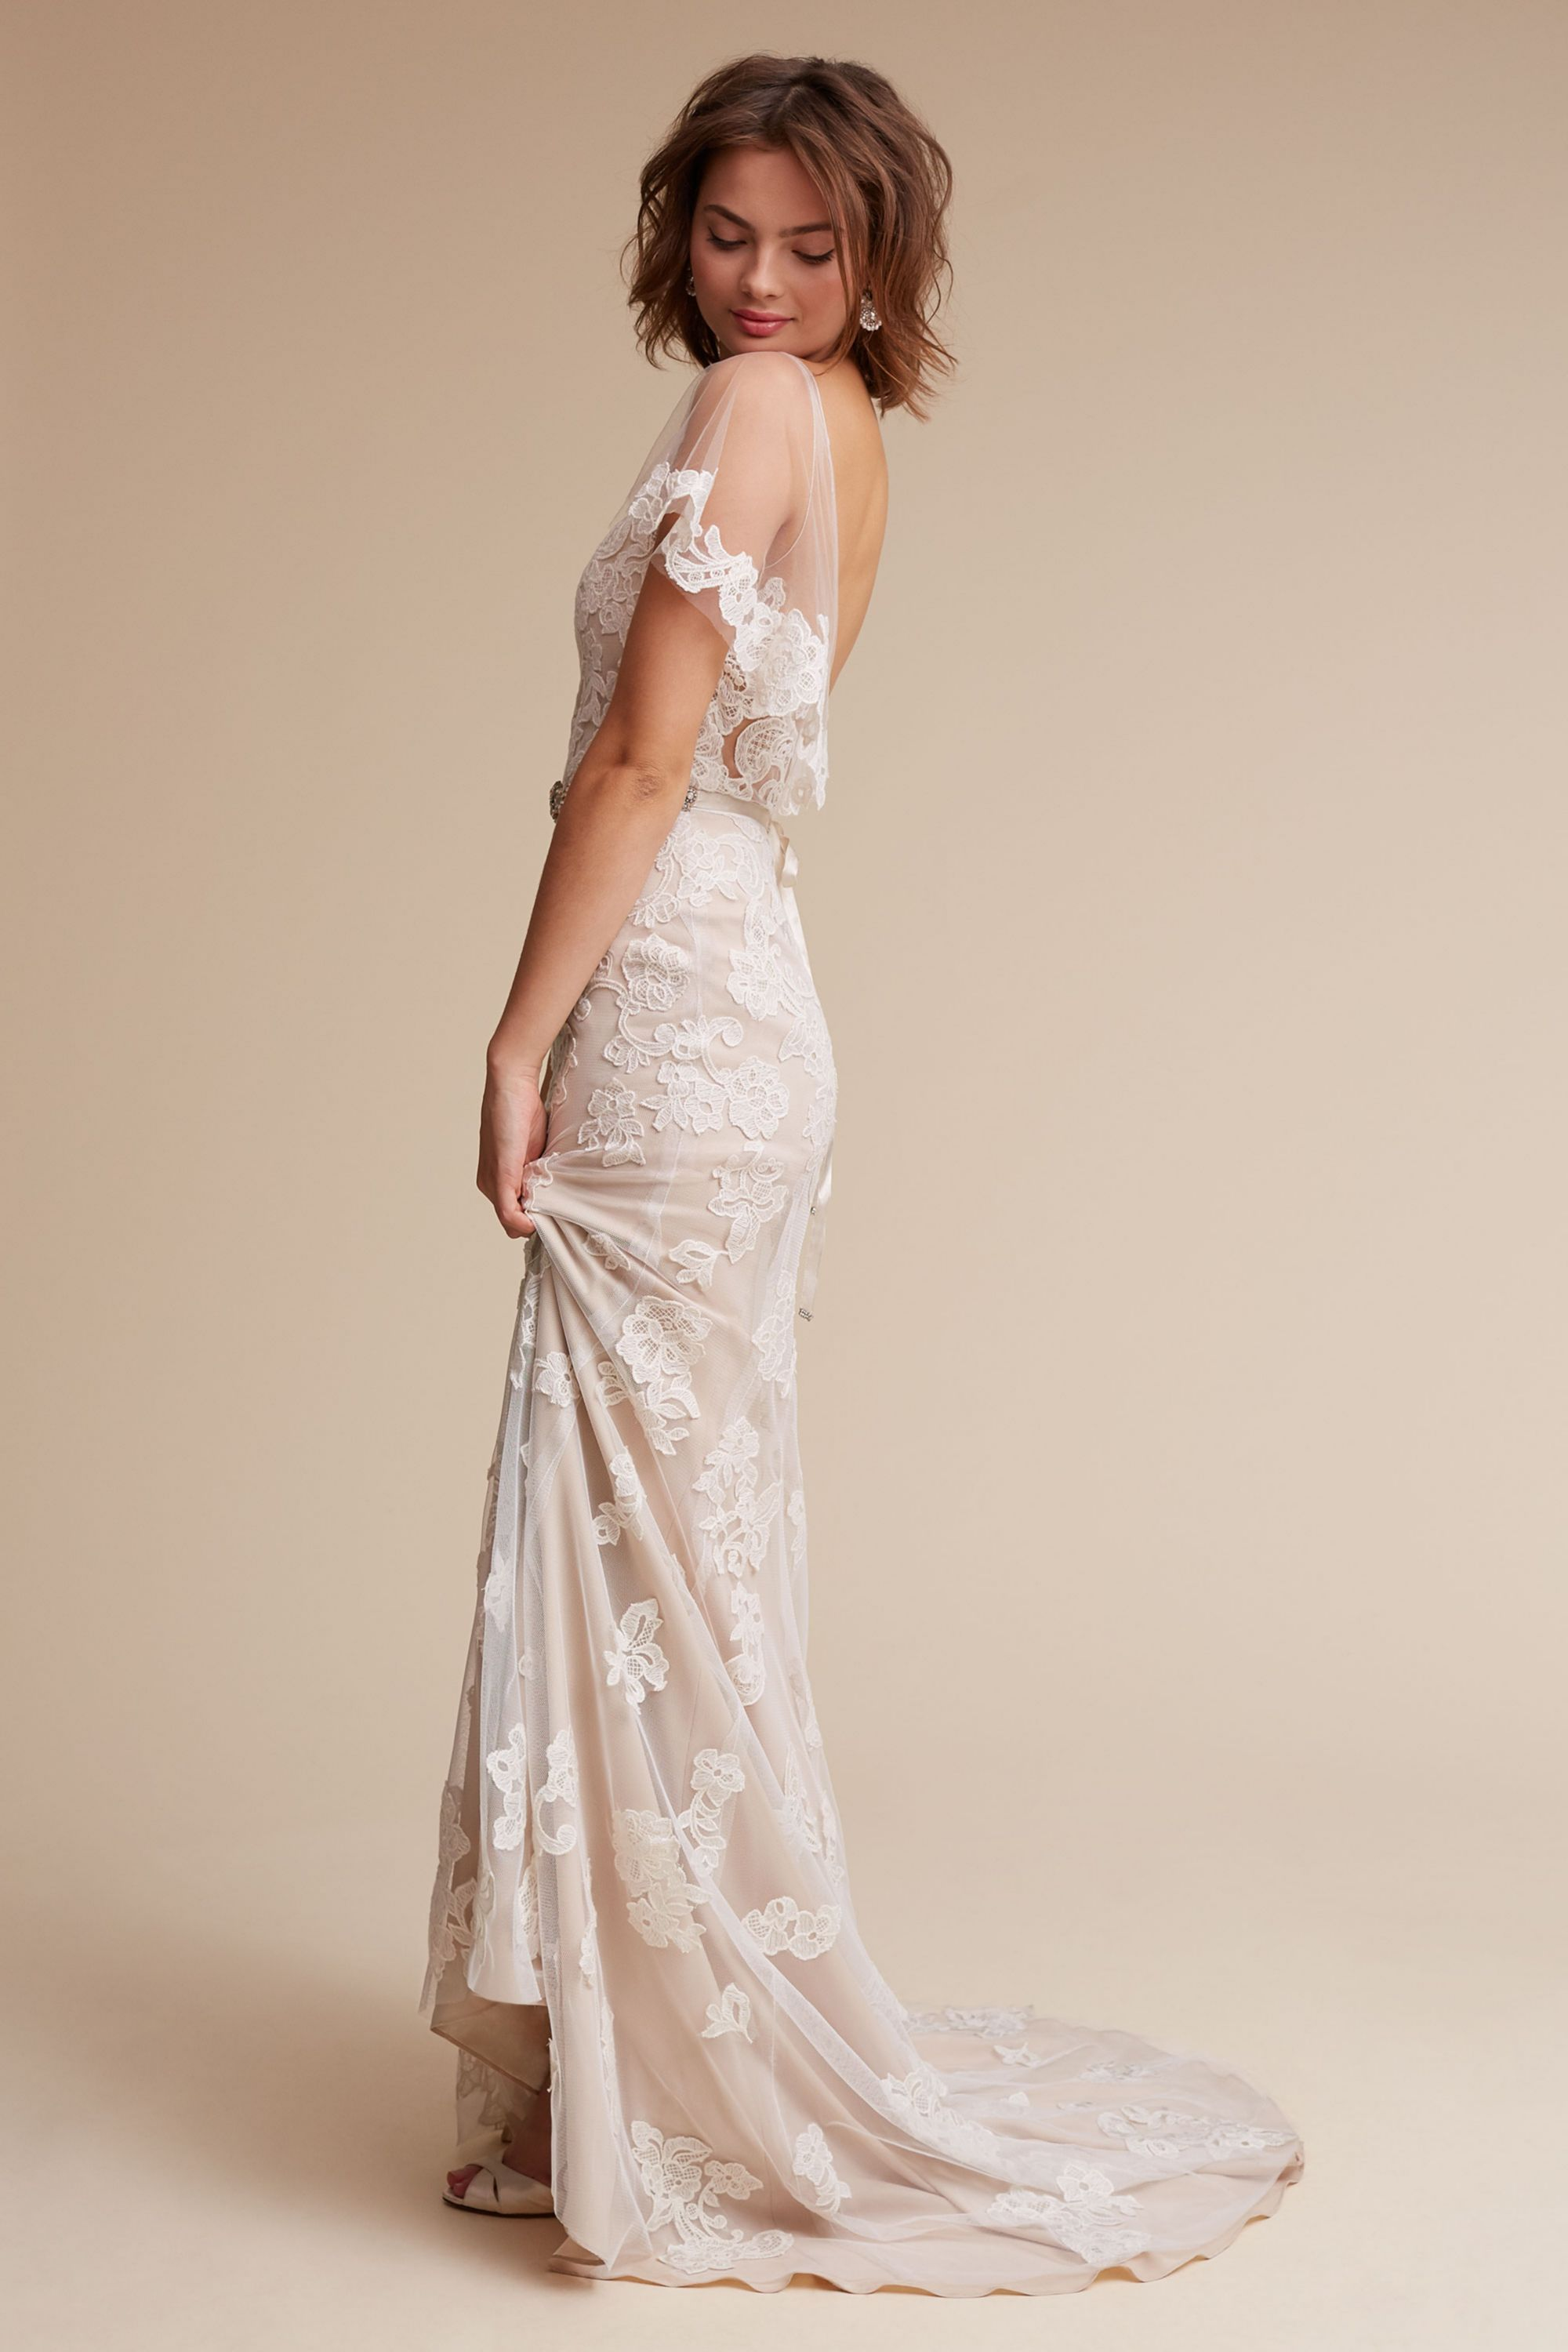 Wedding Wedding Gowns With Sleeves wedding dresses with sleeves long lace cap sleeve bhldn sierra gown gown